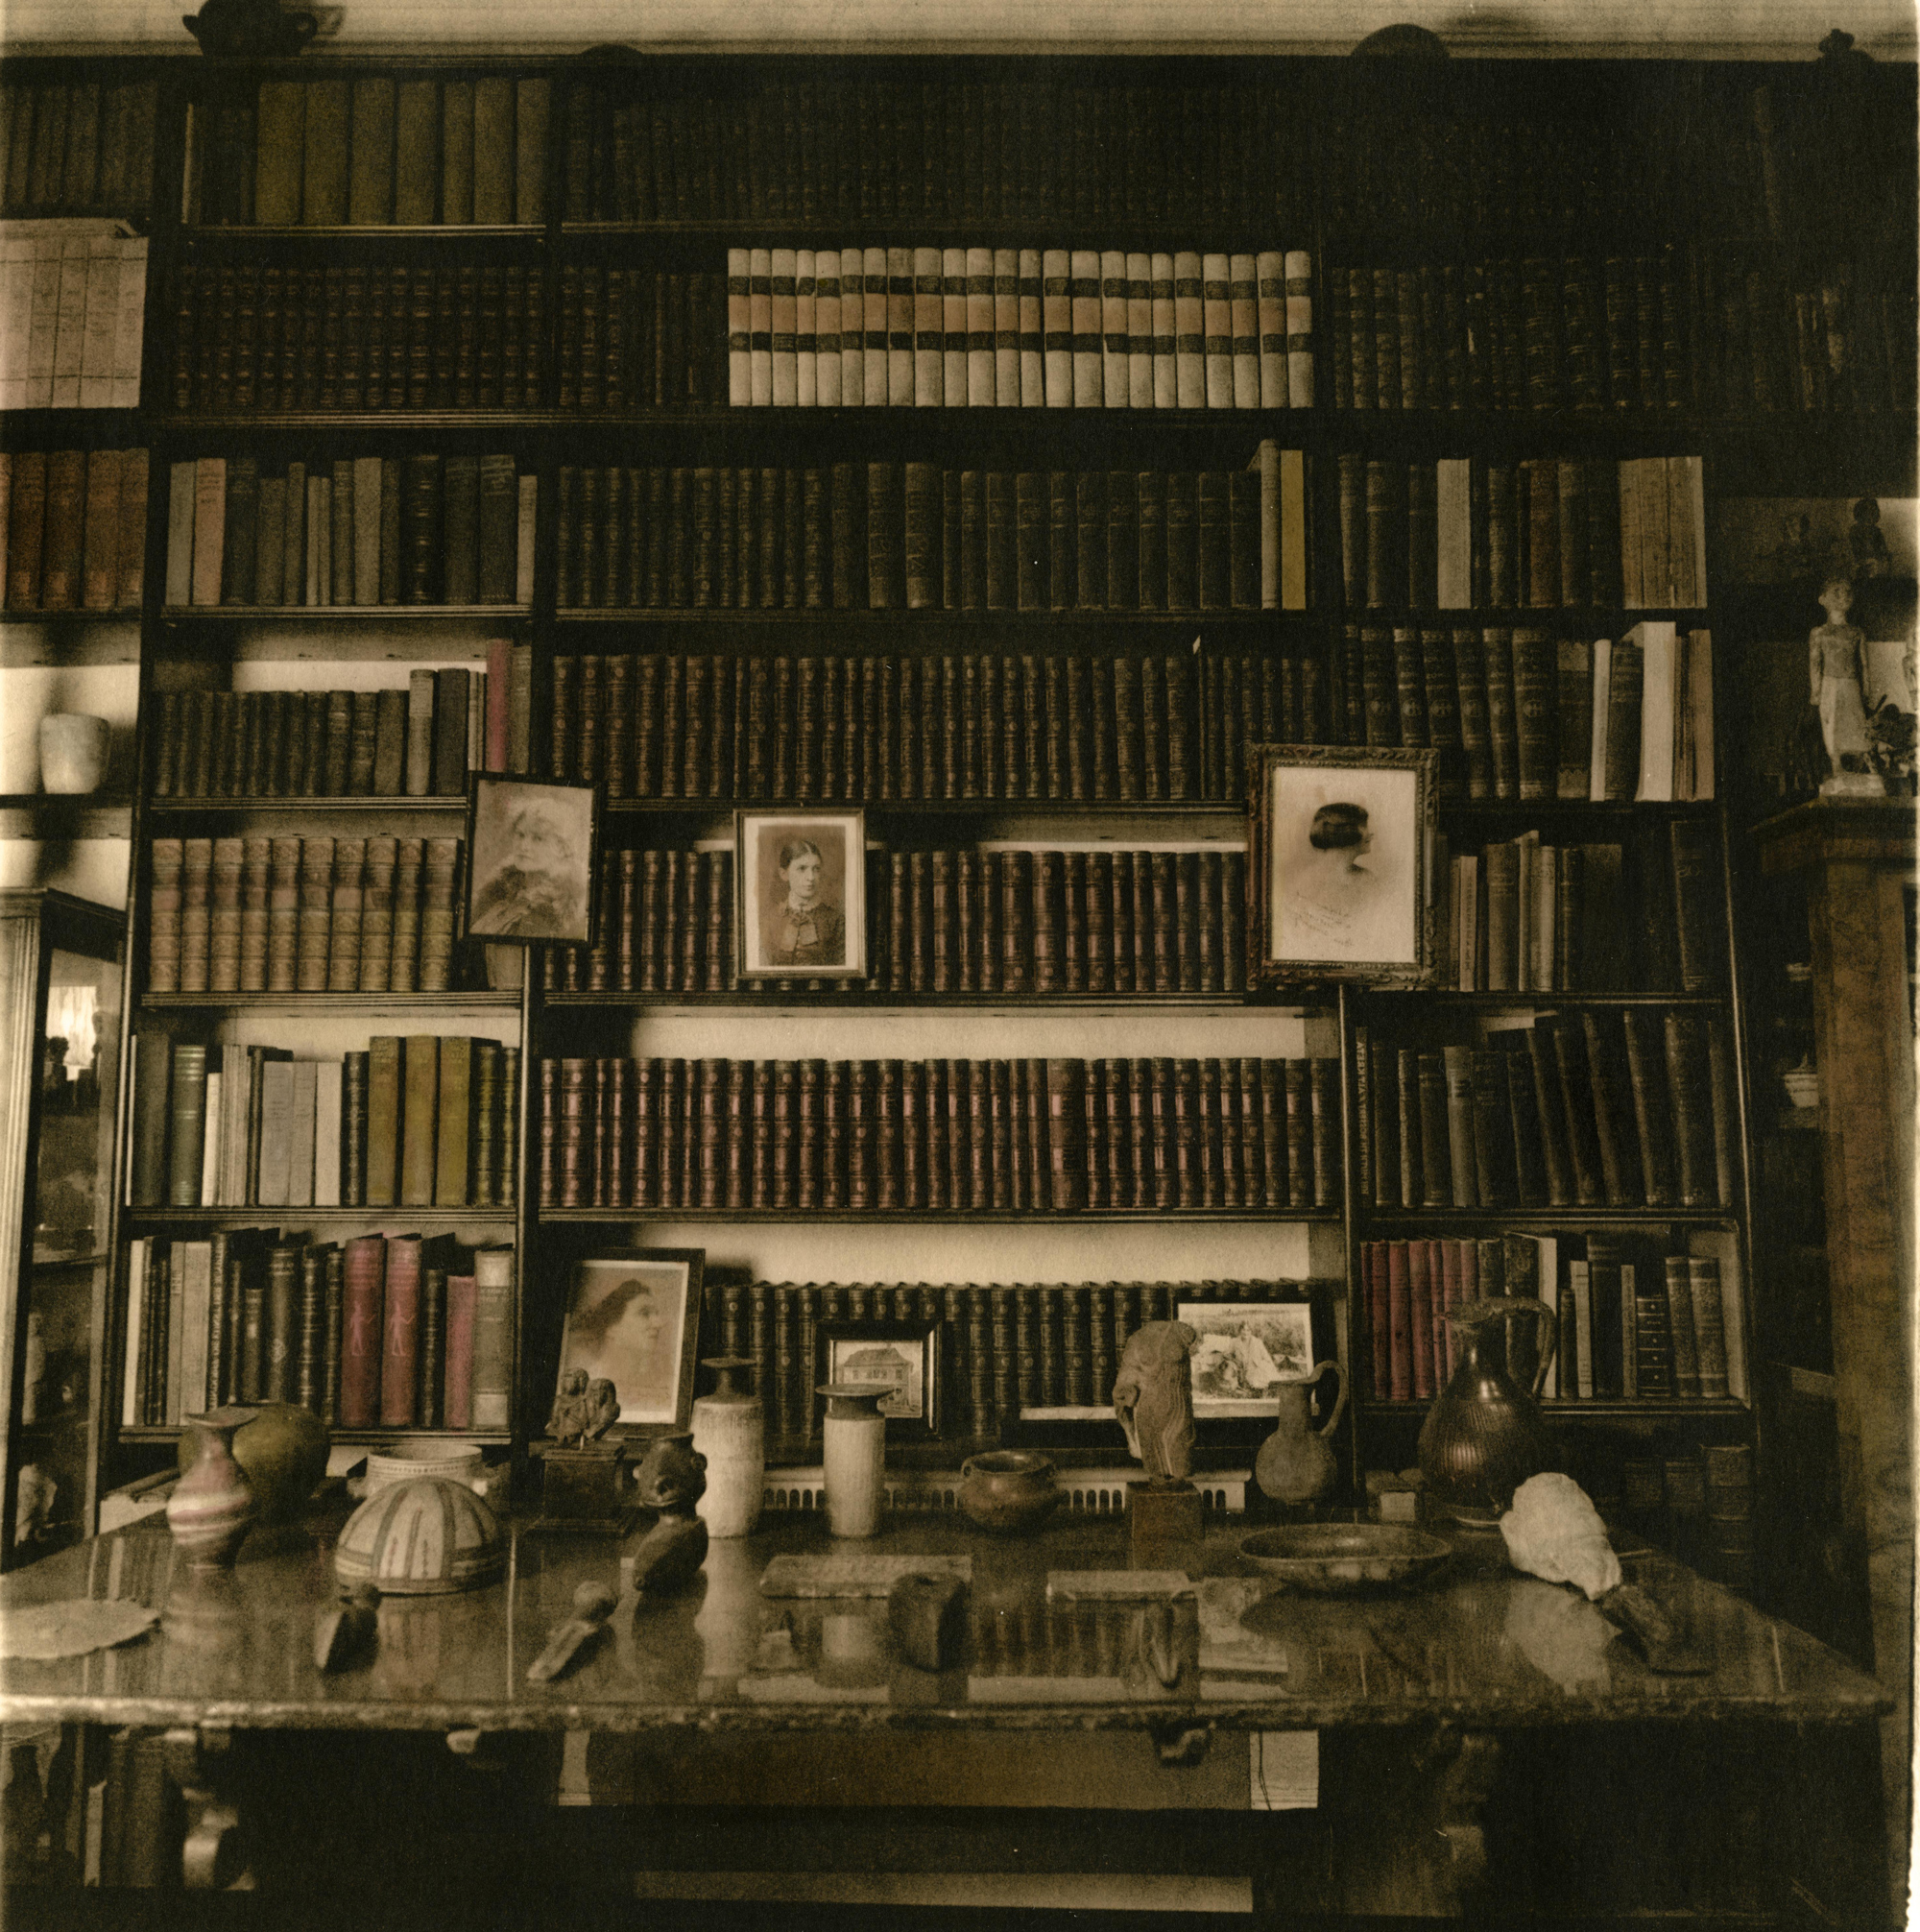 Freud's library